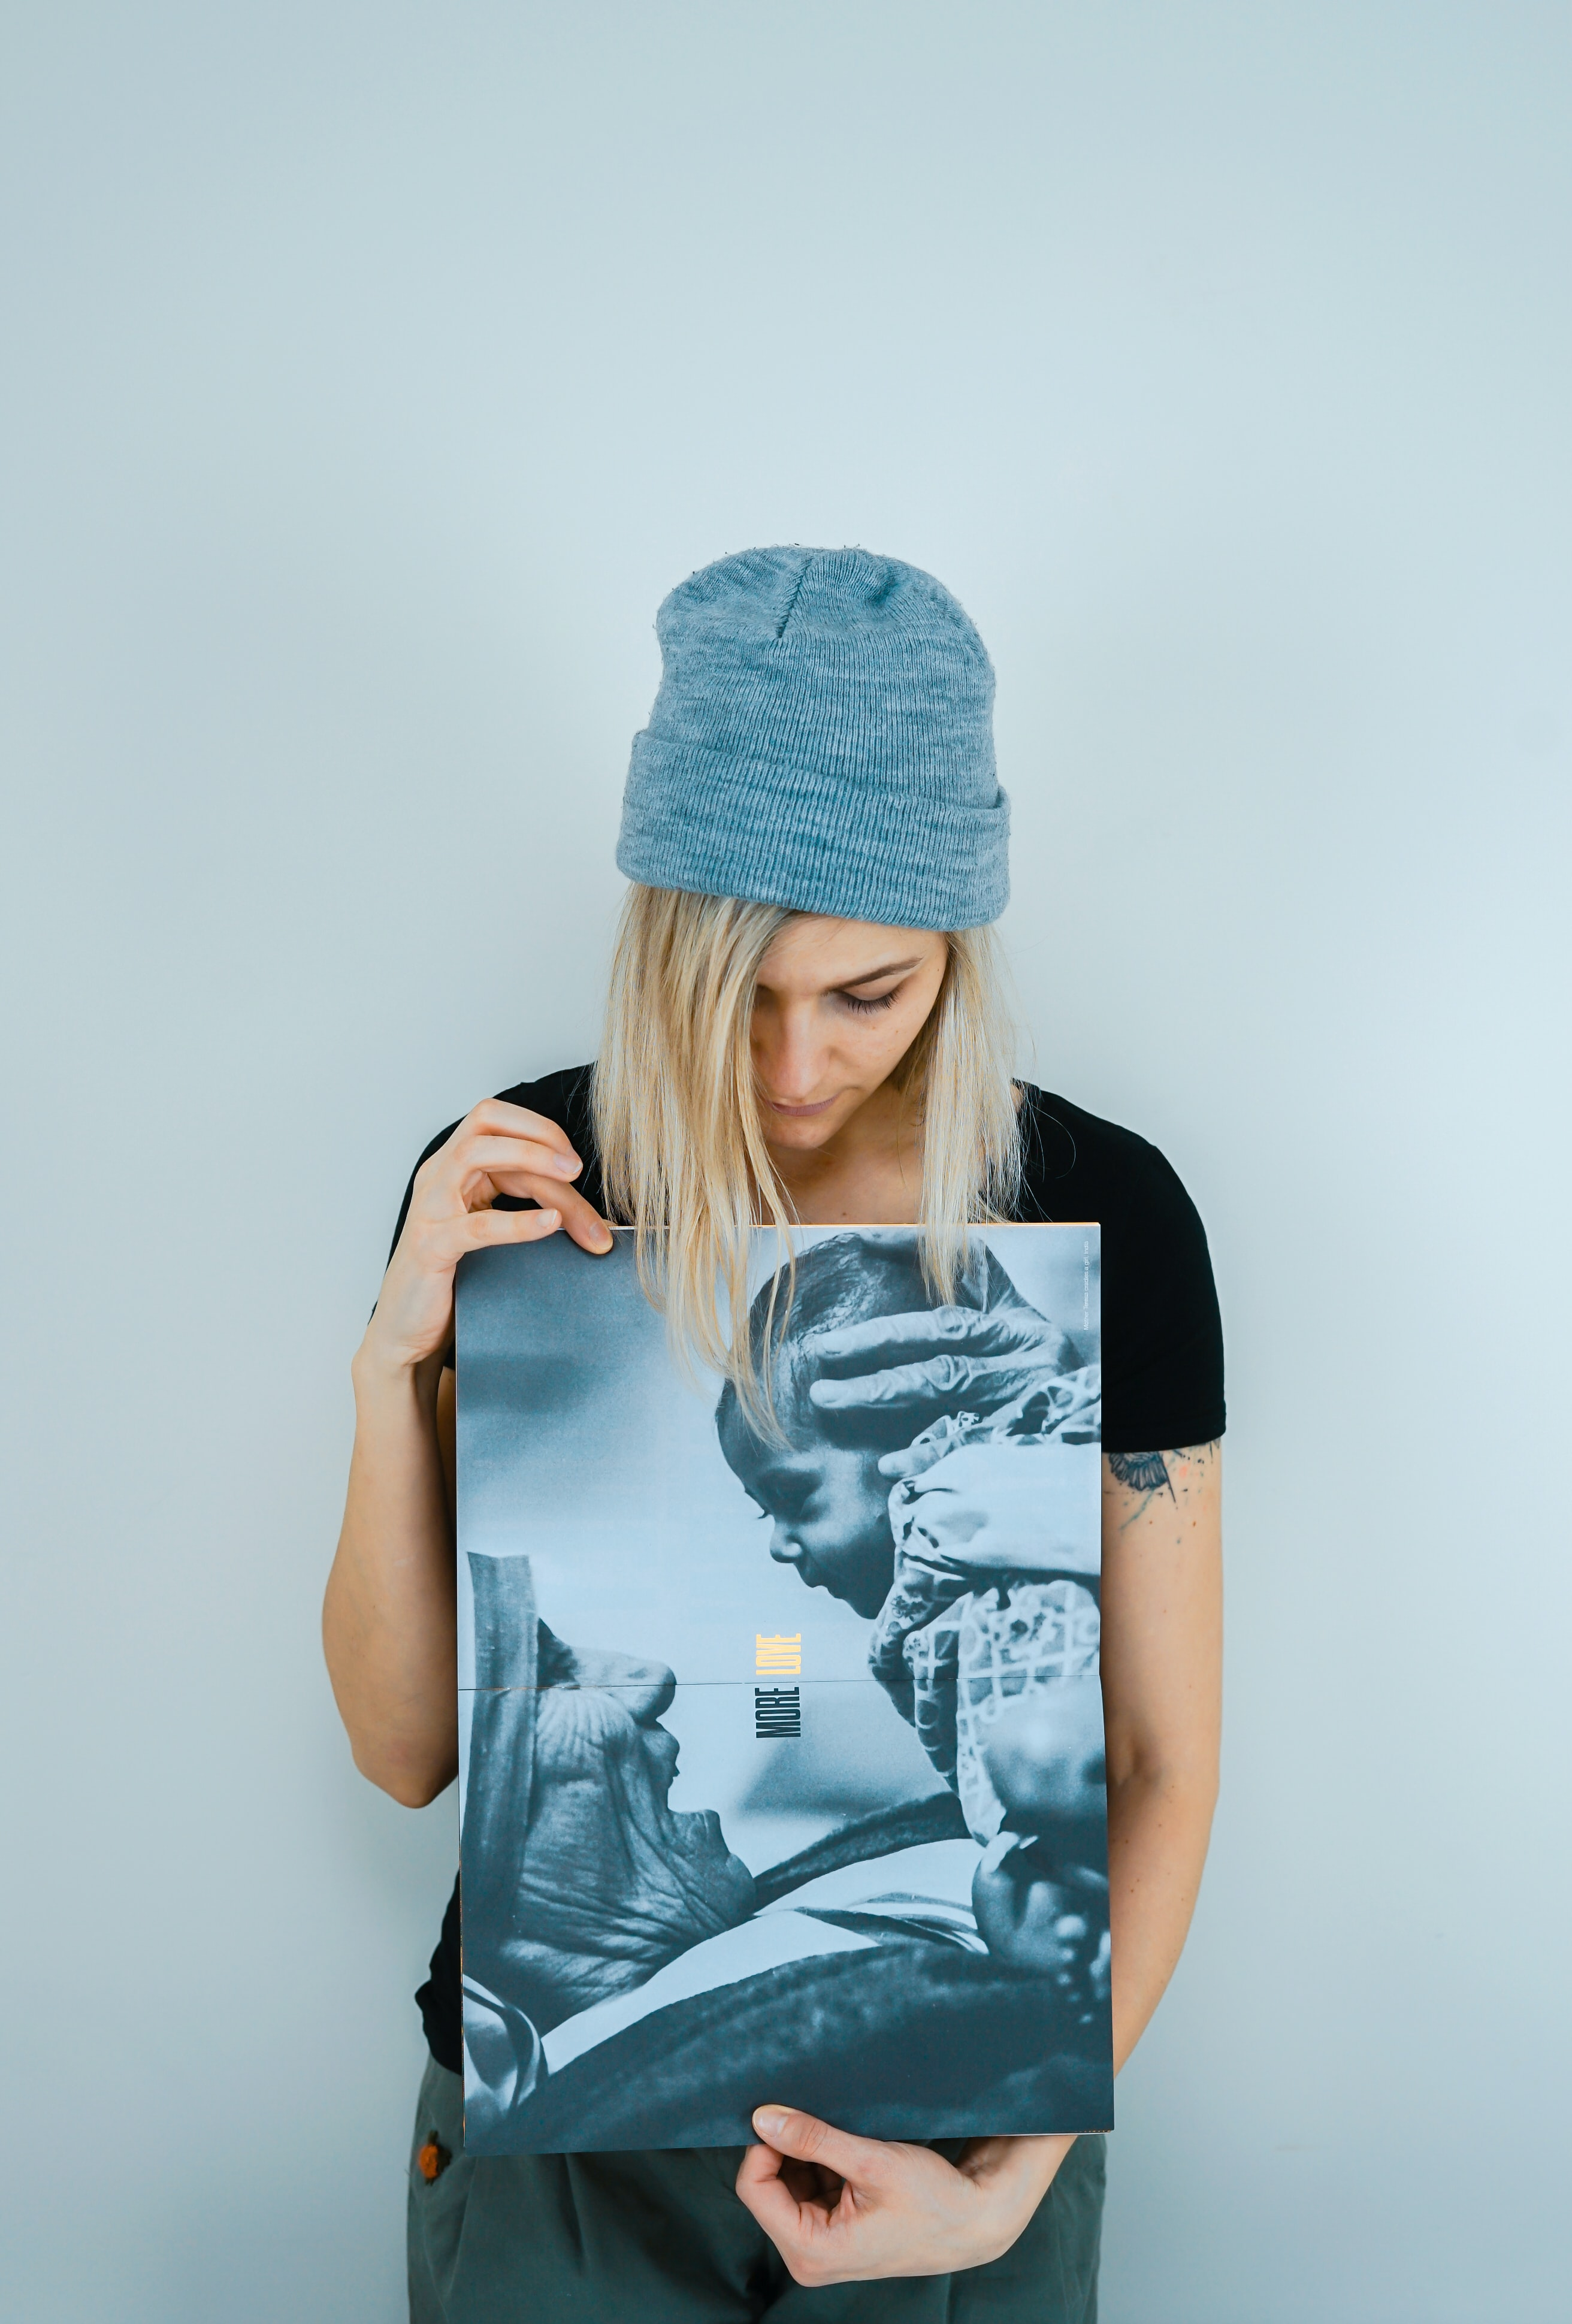 woman holding Mother Teresa holding baby poster